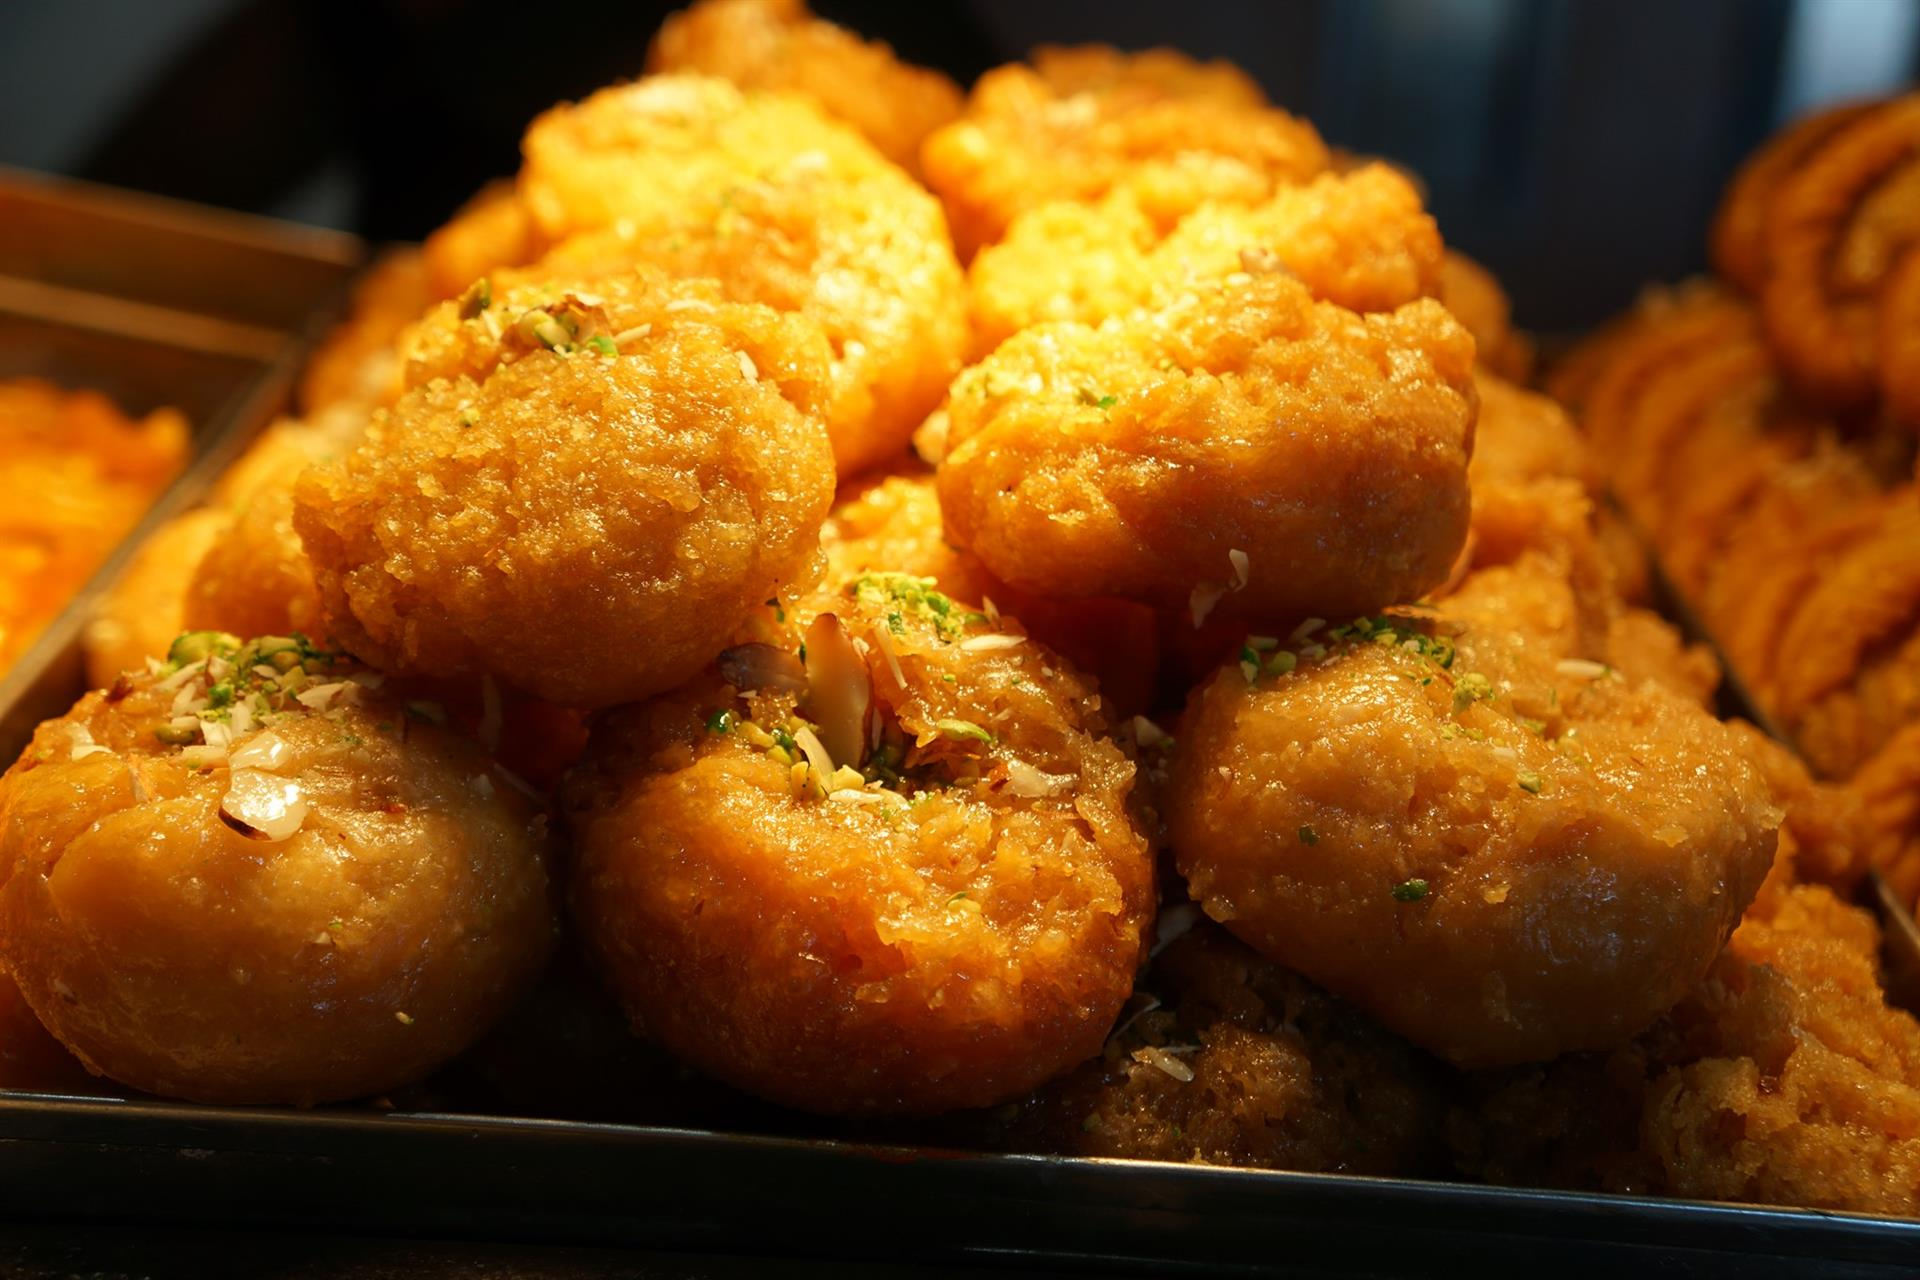 Flaky flour puffs filled with caramelized onions and spices